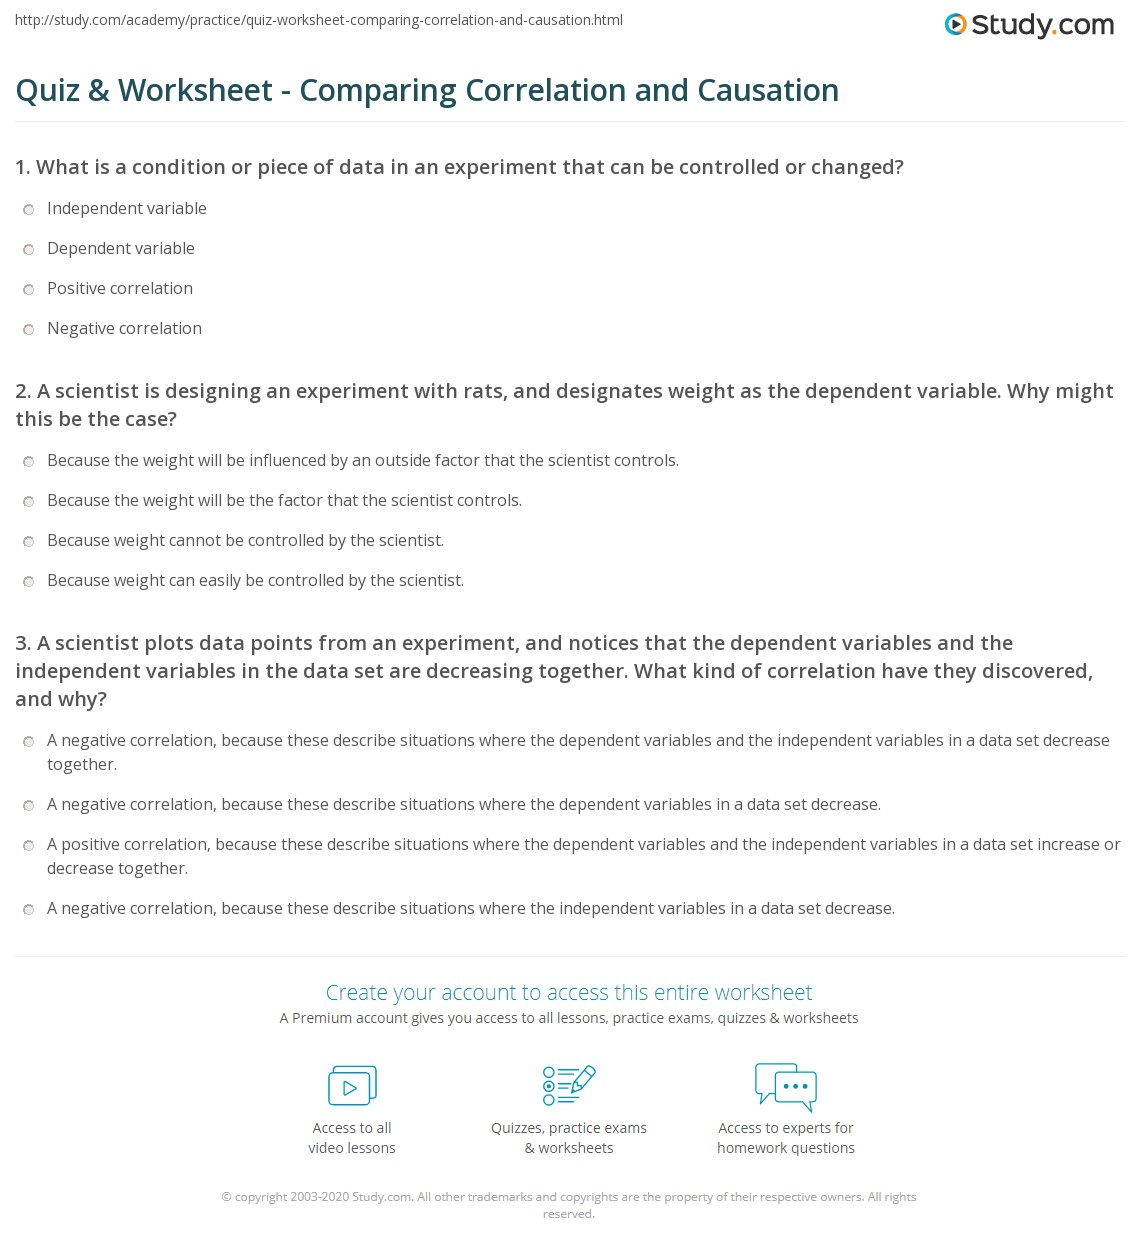 Aldiablosus  Fascinating Quiz Amp Worksheet  Comparing Correlation And Causation  Studycom With Licious Print Correlation Vs Causation Differences Amp Definition Worksheet With Astounding The Kissing Hand Worksheets Also Low Income Budget Worksheet In Addition Automated Body Fat Content Worksheet And Behavior Management Worksheets As Well As Convert Decimal To Percent Worksheet Additionally Word Detective Worksheet From Studycom With Aldiablosus  Licious Quiz Amp Worksheet  Comparing Correlation And Causation  Studycom With Astounding Print Correlation Vs Causation Differences Amp Definition Worksheet And Fascinating The Kissing Hand Worksheets Also Low Income Budget Worksheet In Addition Automated Body Fat Content Worksheet From Studycom